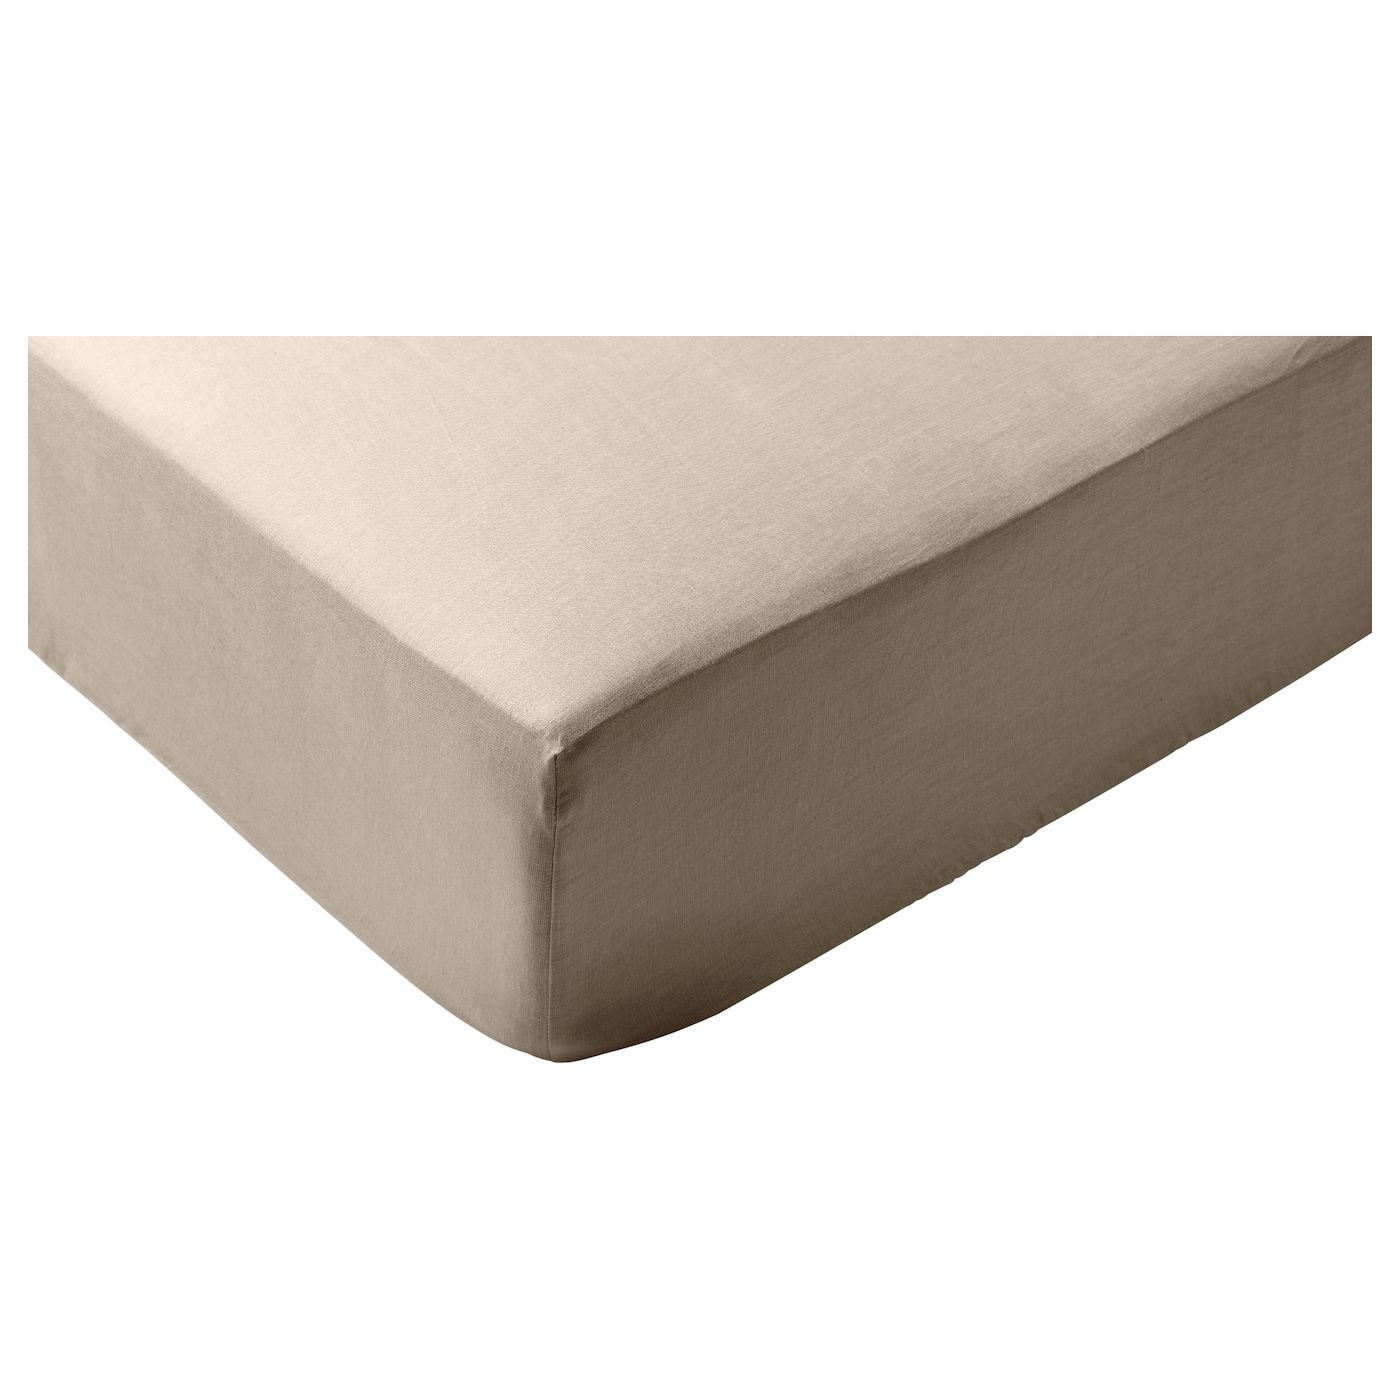 Puderviva drap housse naturel 90x200 cm ikea for Drap housse 90x200